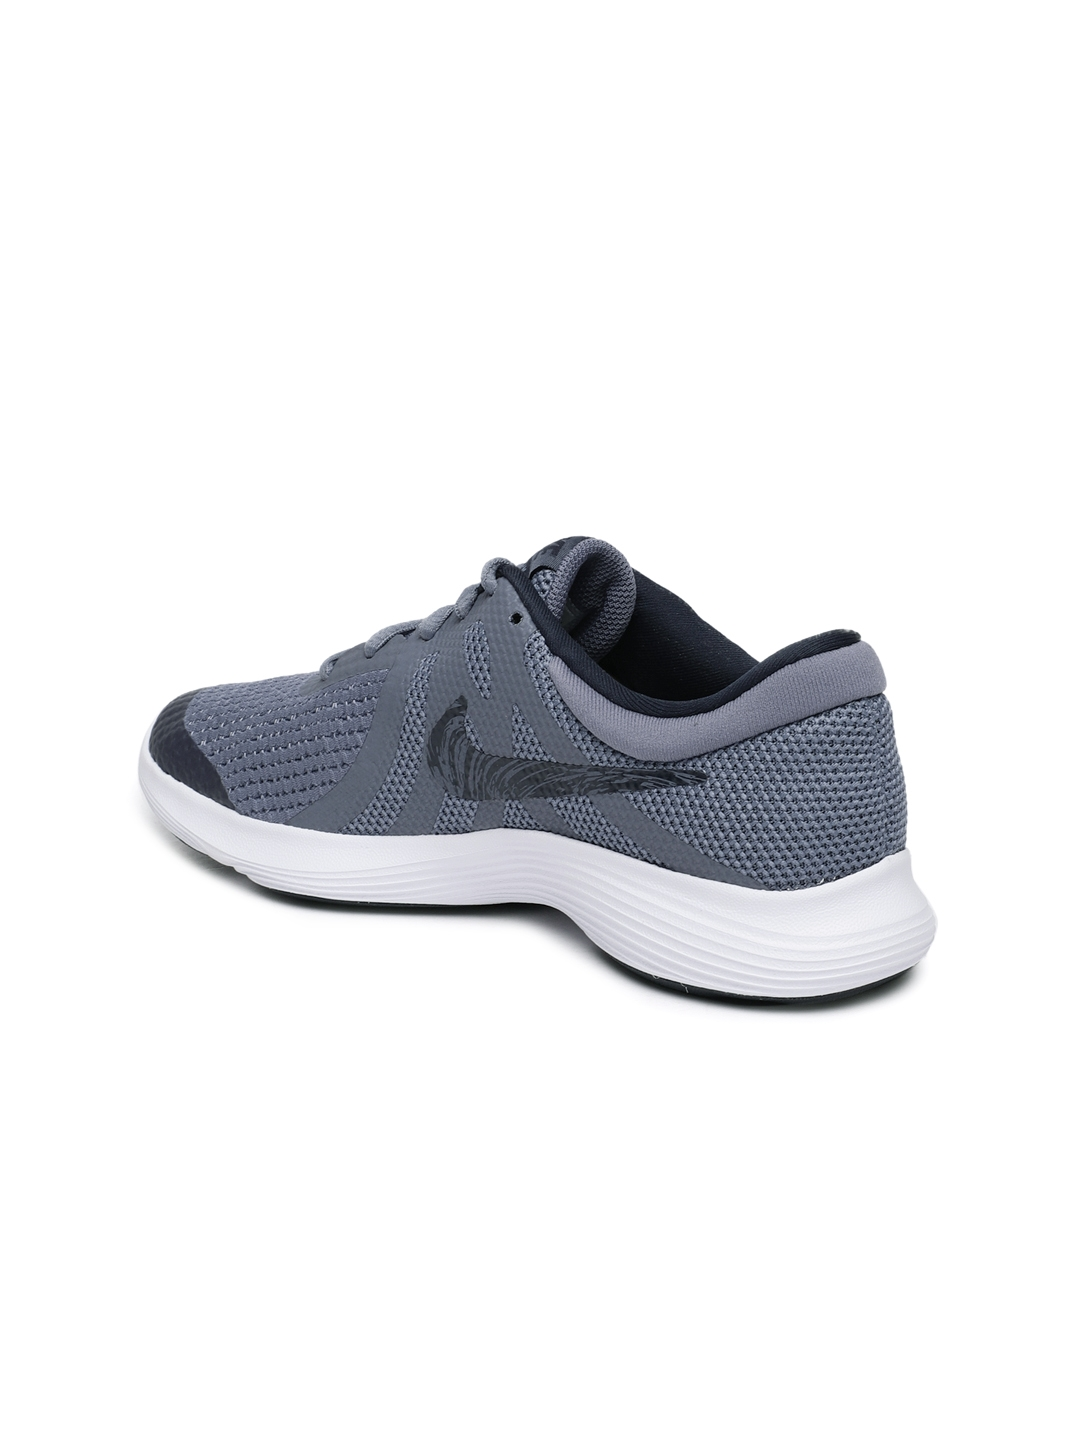 a899d0a4cf7 Buy Nike Boys Grey Revolution 4 (GS) Running Shoes - Sports Shoes ...